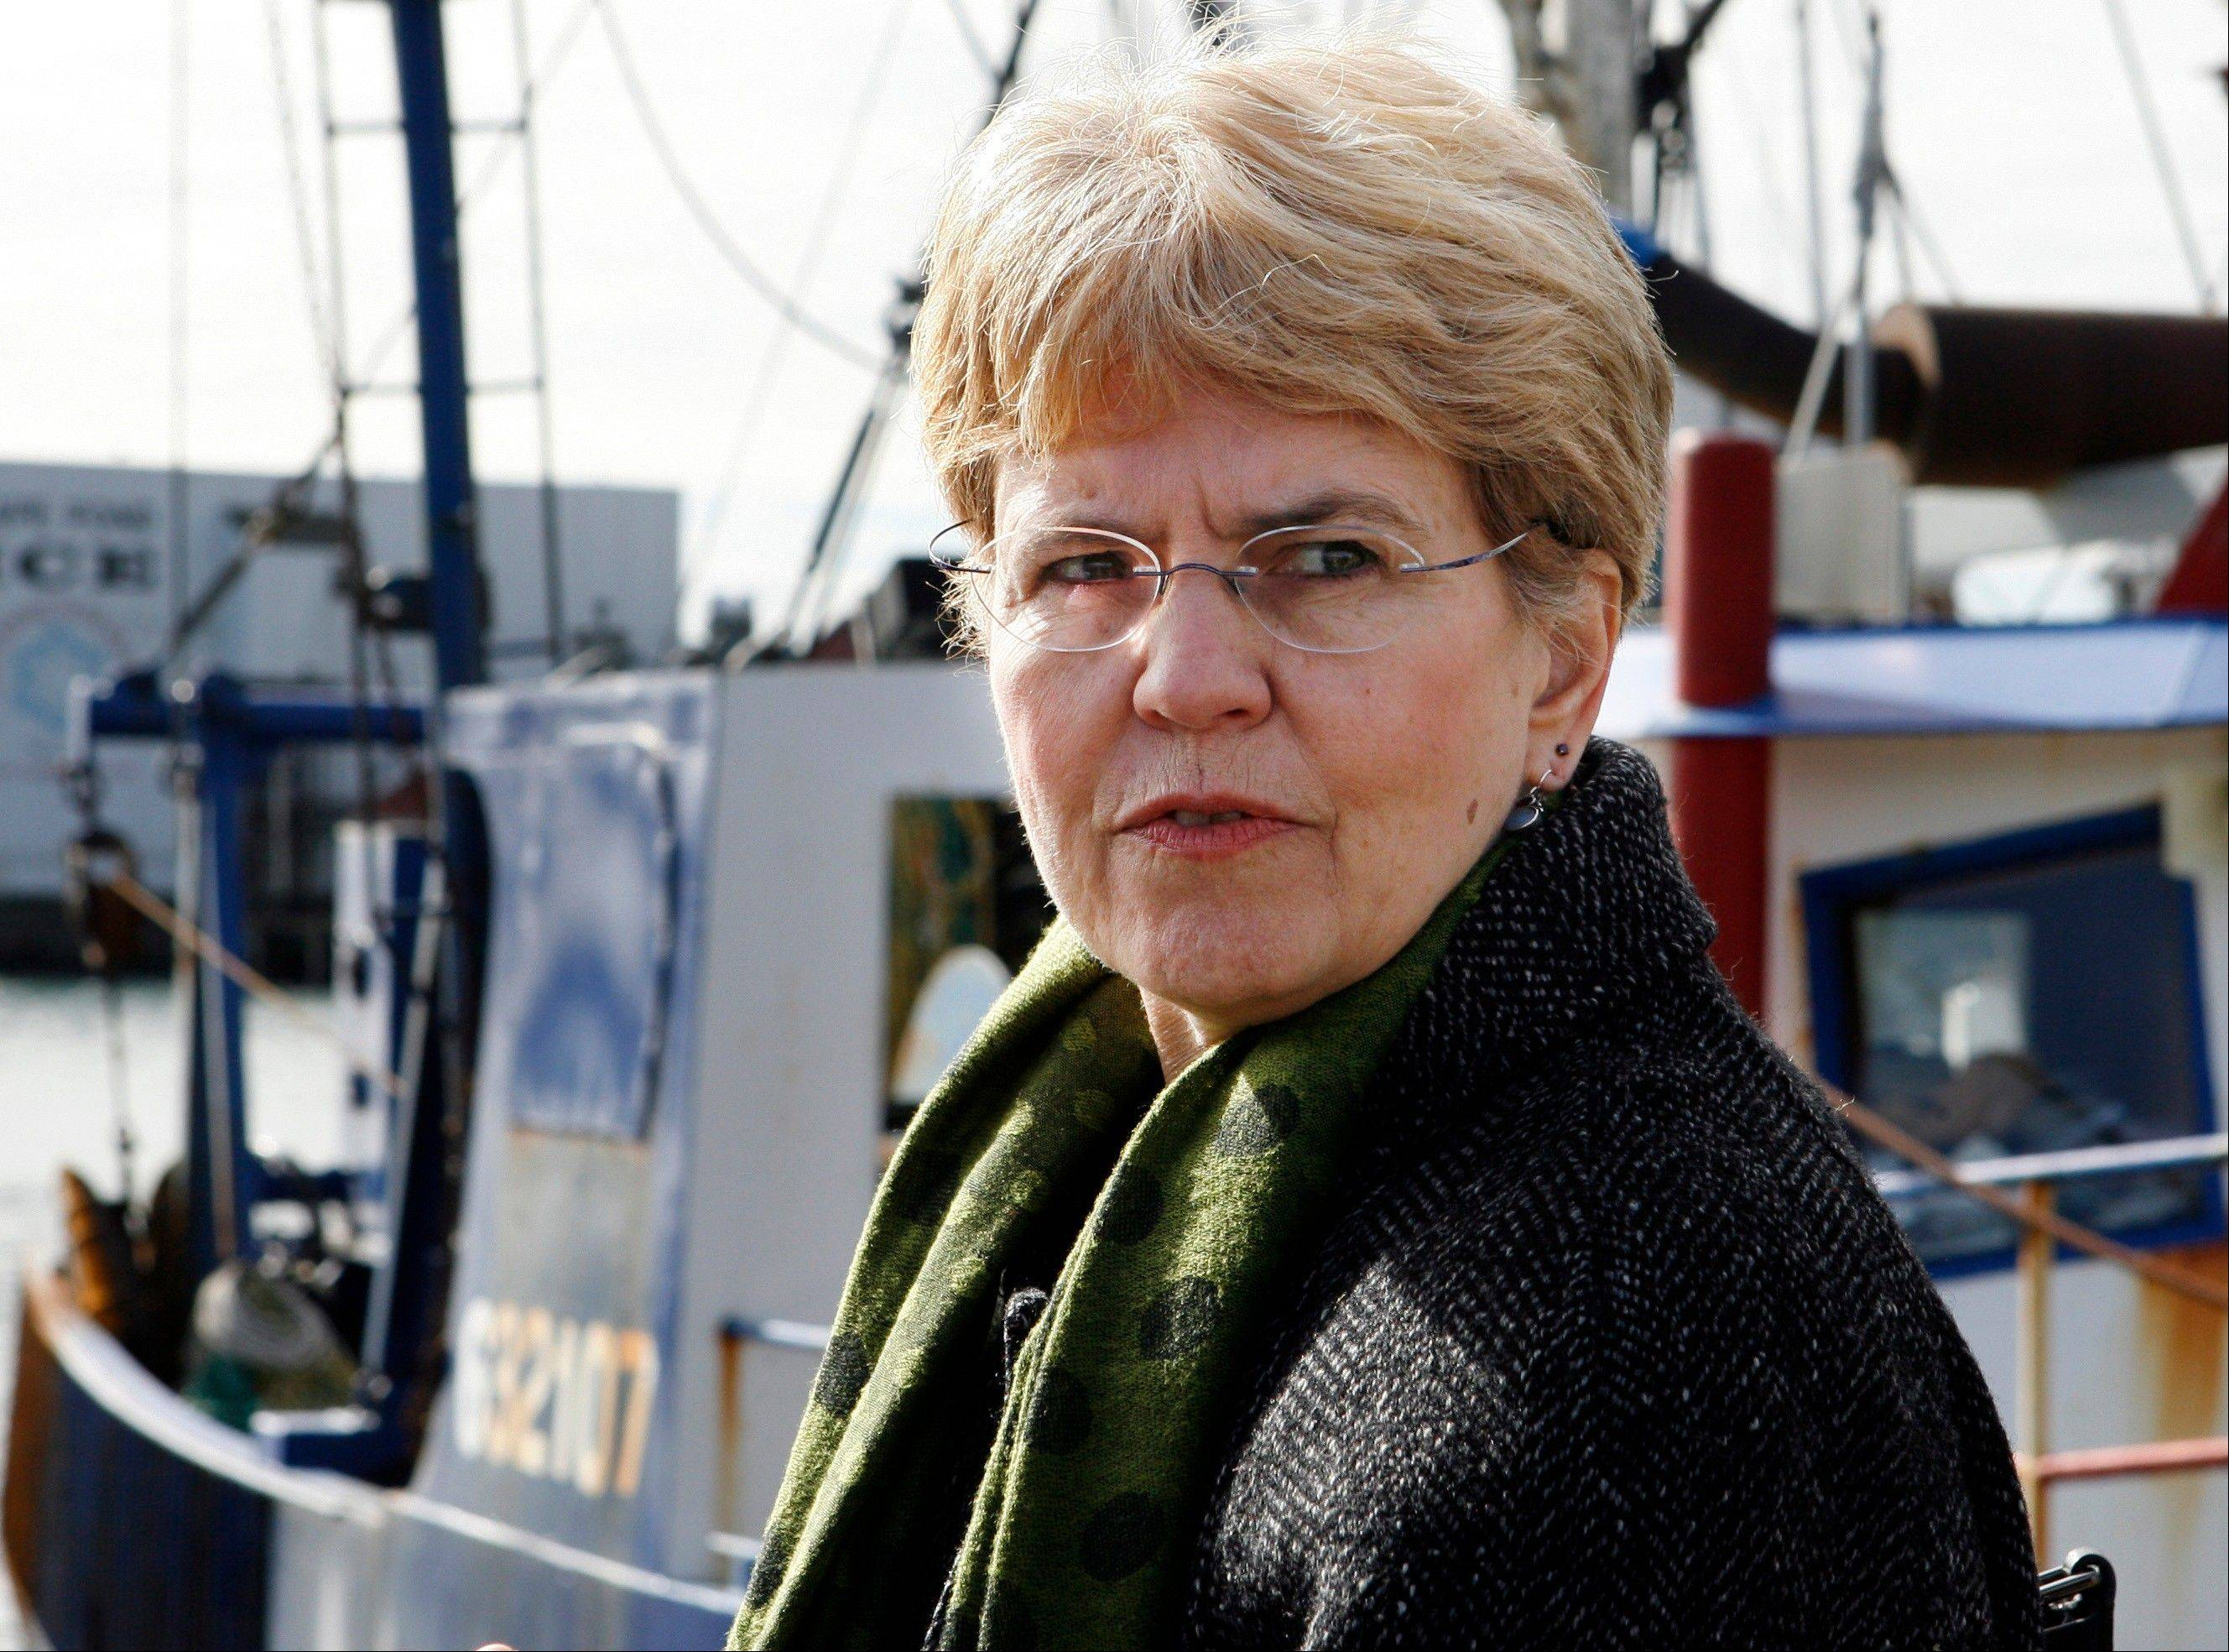 National Oceanic and Atmospheric Administration chief Jane Lubchenco will leave her post at the end of February 2013.